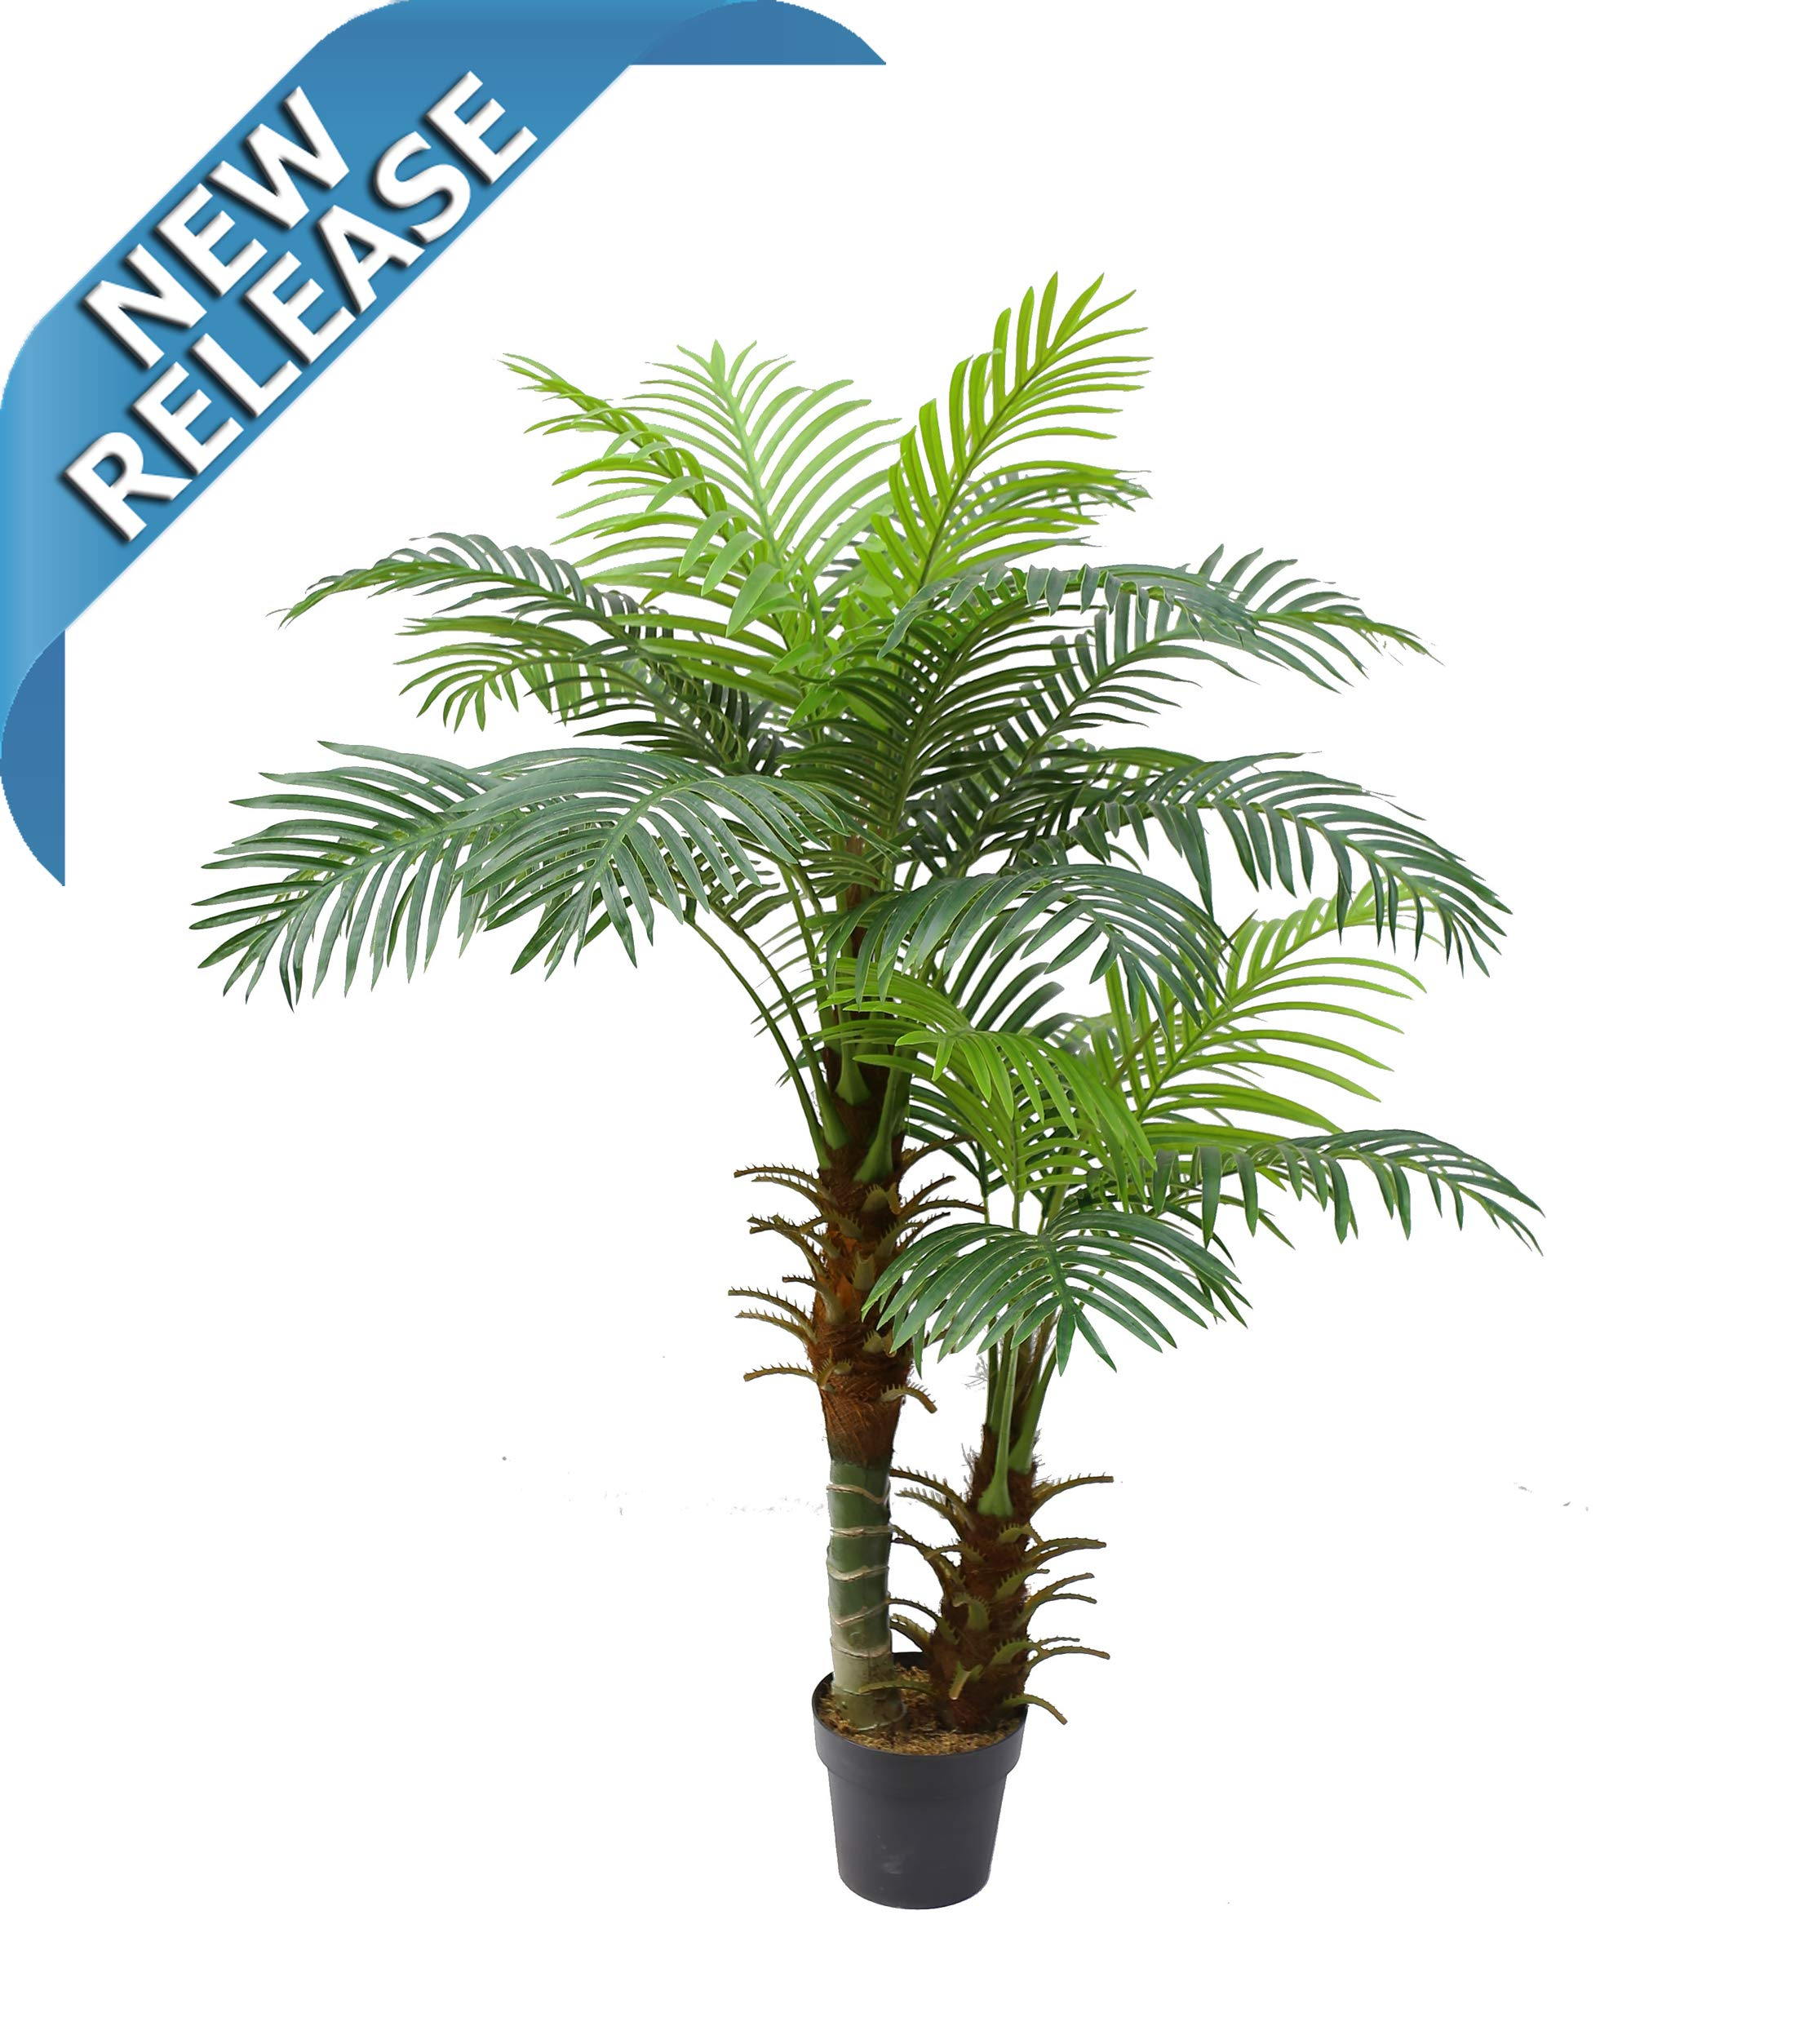 AMERIQUE Gorgeous and Detailed Double-Headed 5' Tropical Hawaii Palm Tree Artificial Silk Plant with UV Protection, with Nursery Plastic Pot, Super Quality, 5 Feet, Green by AMERIQUE